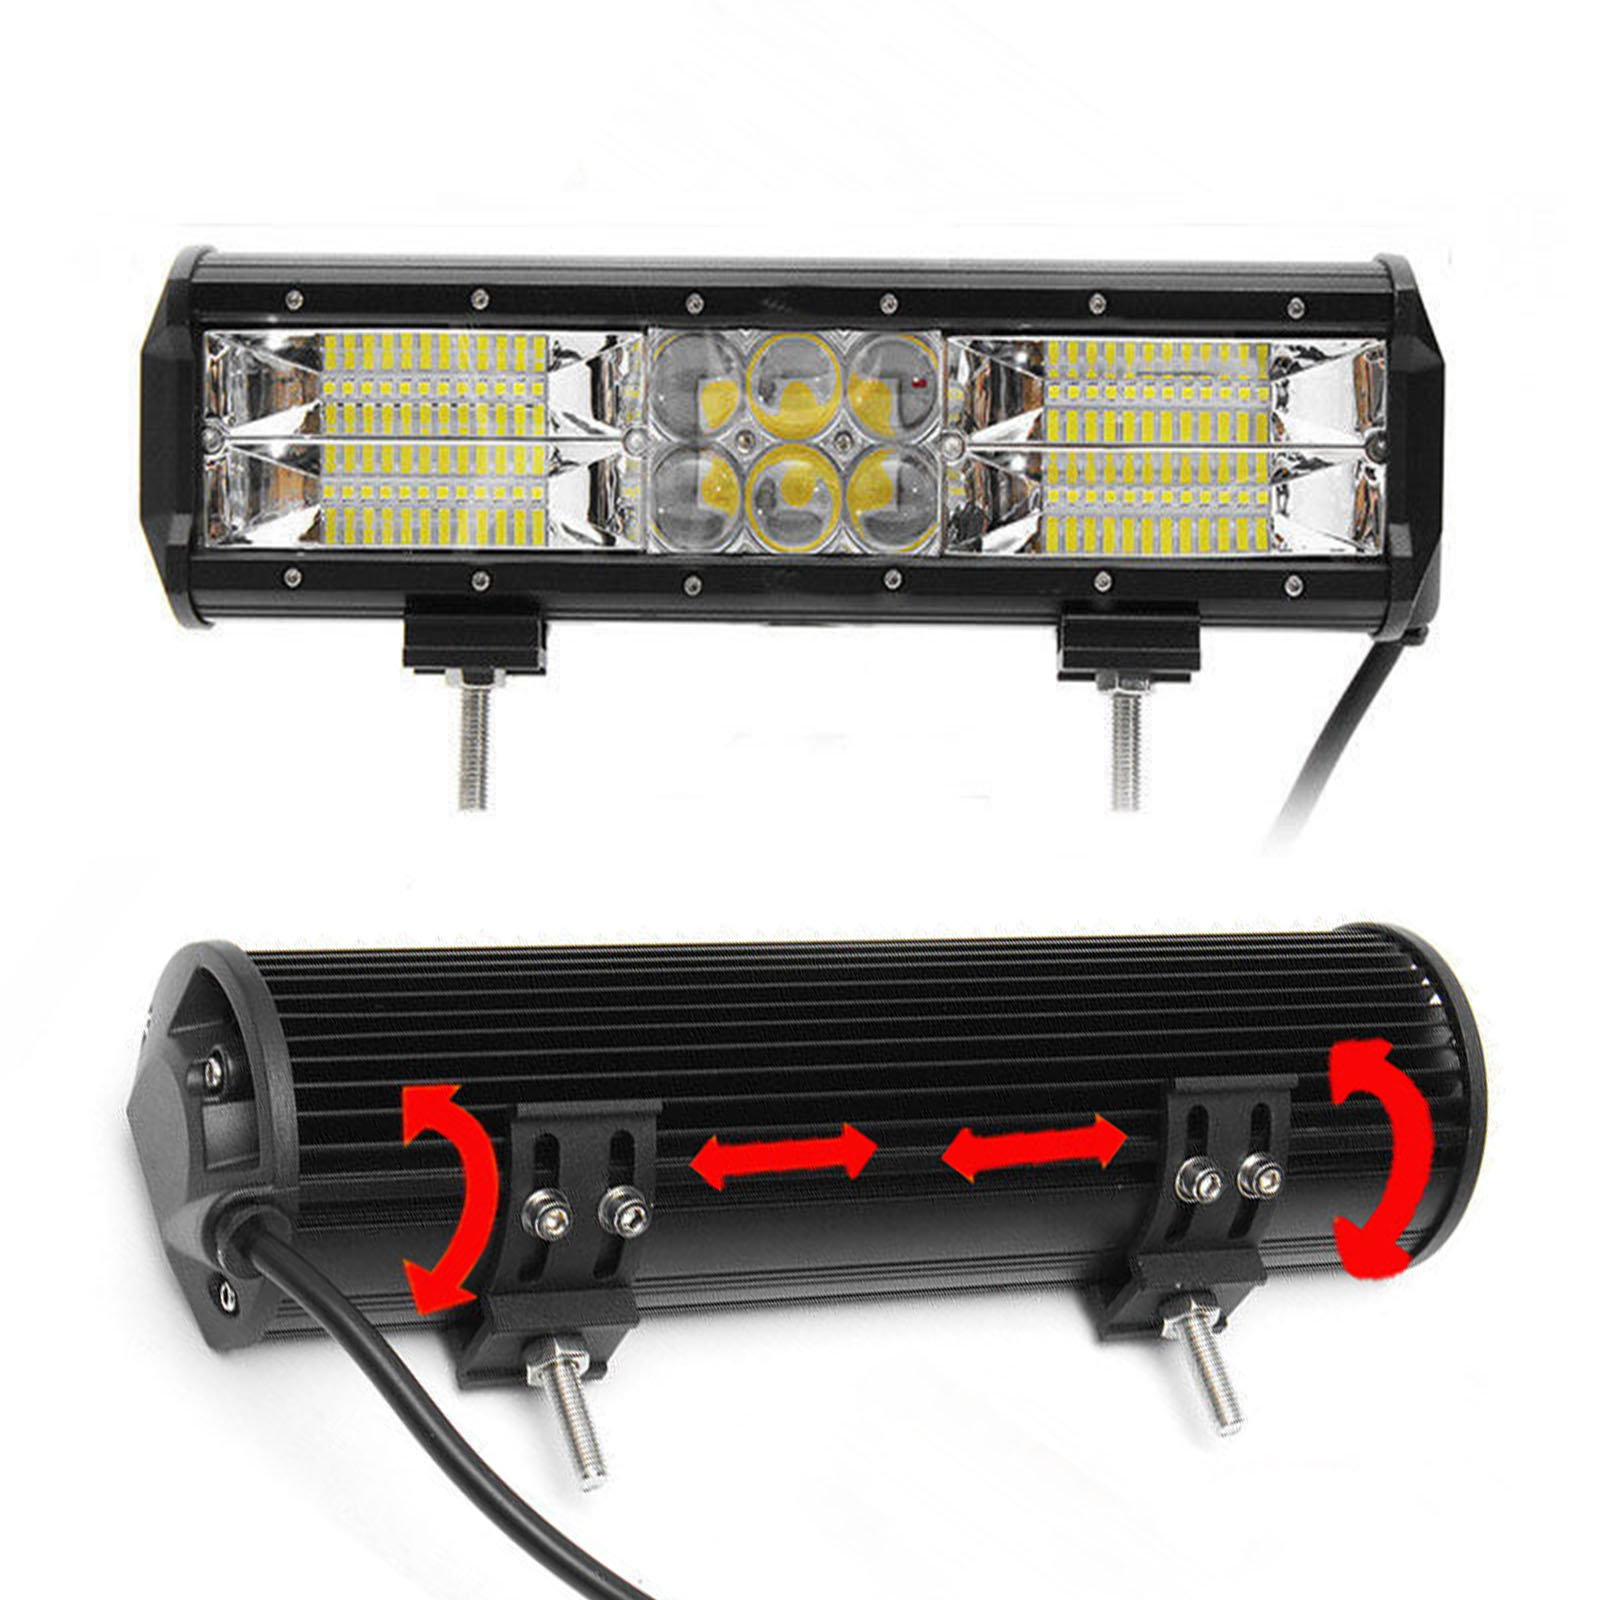 12inch 5D 240W Osram LED Work Light Bar Flood Spot Combo Offroad Truck SUV Lamp